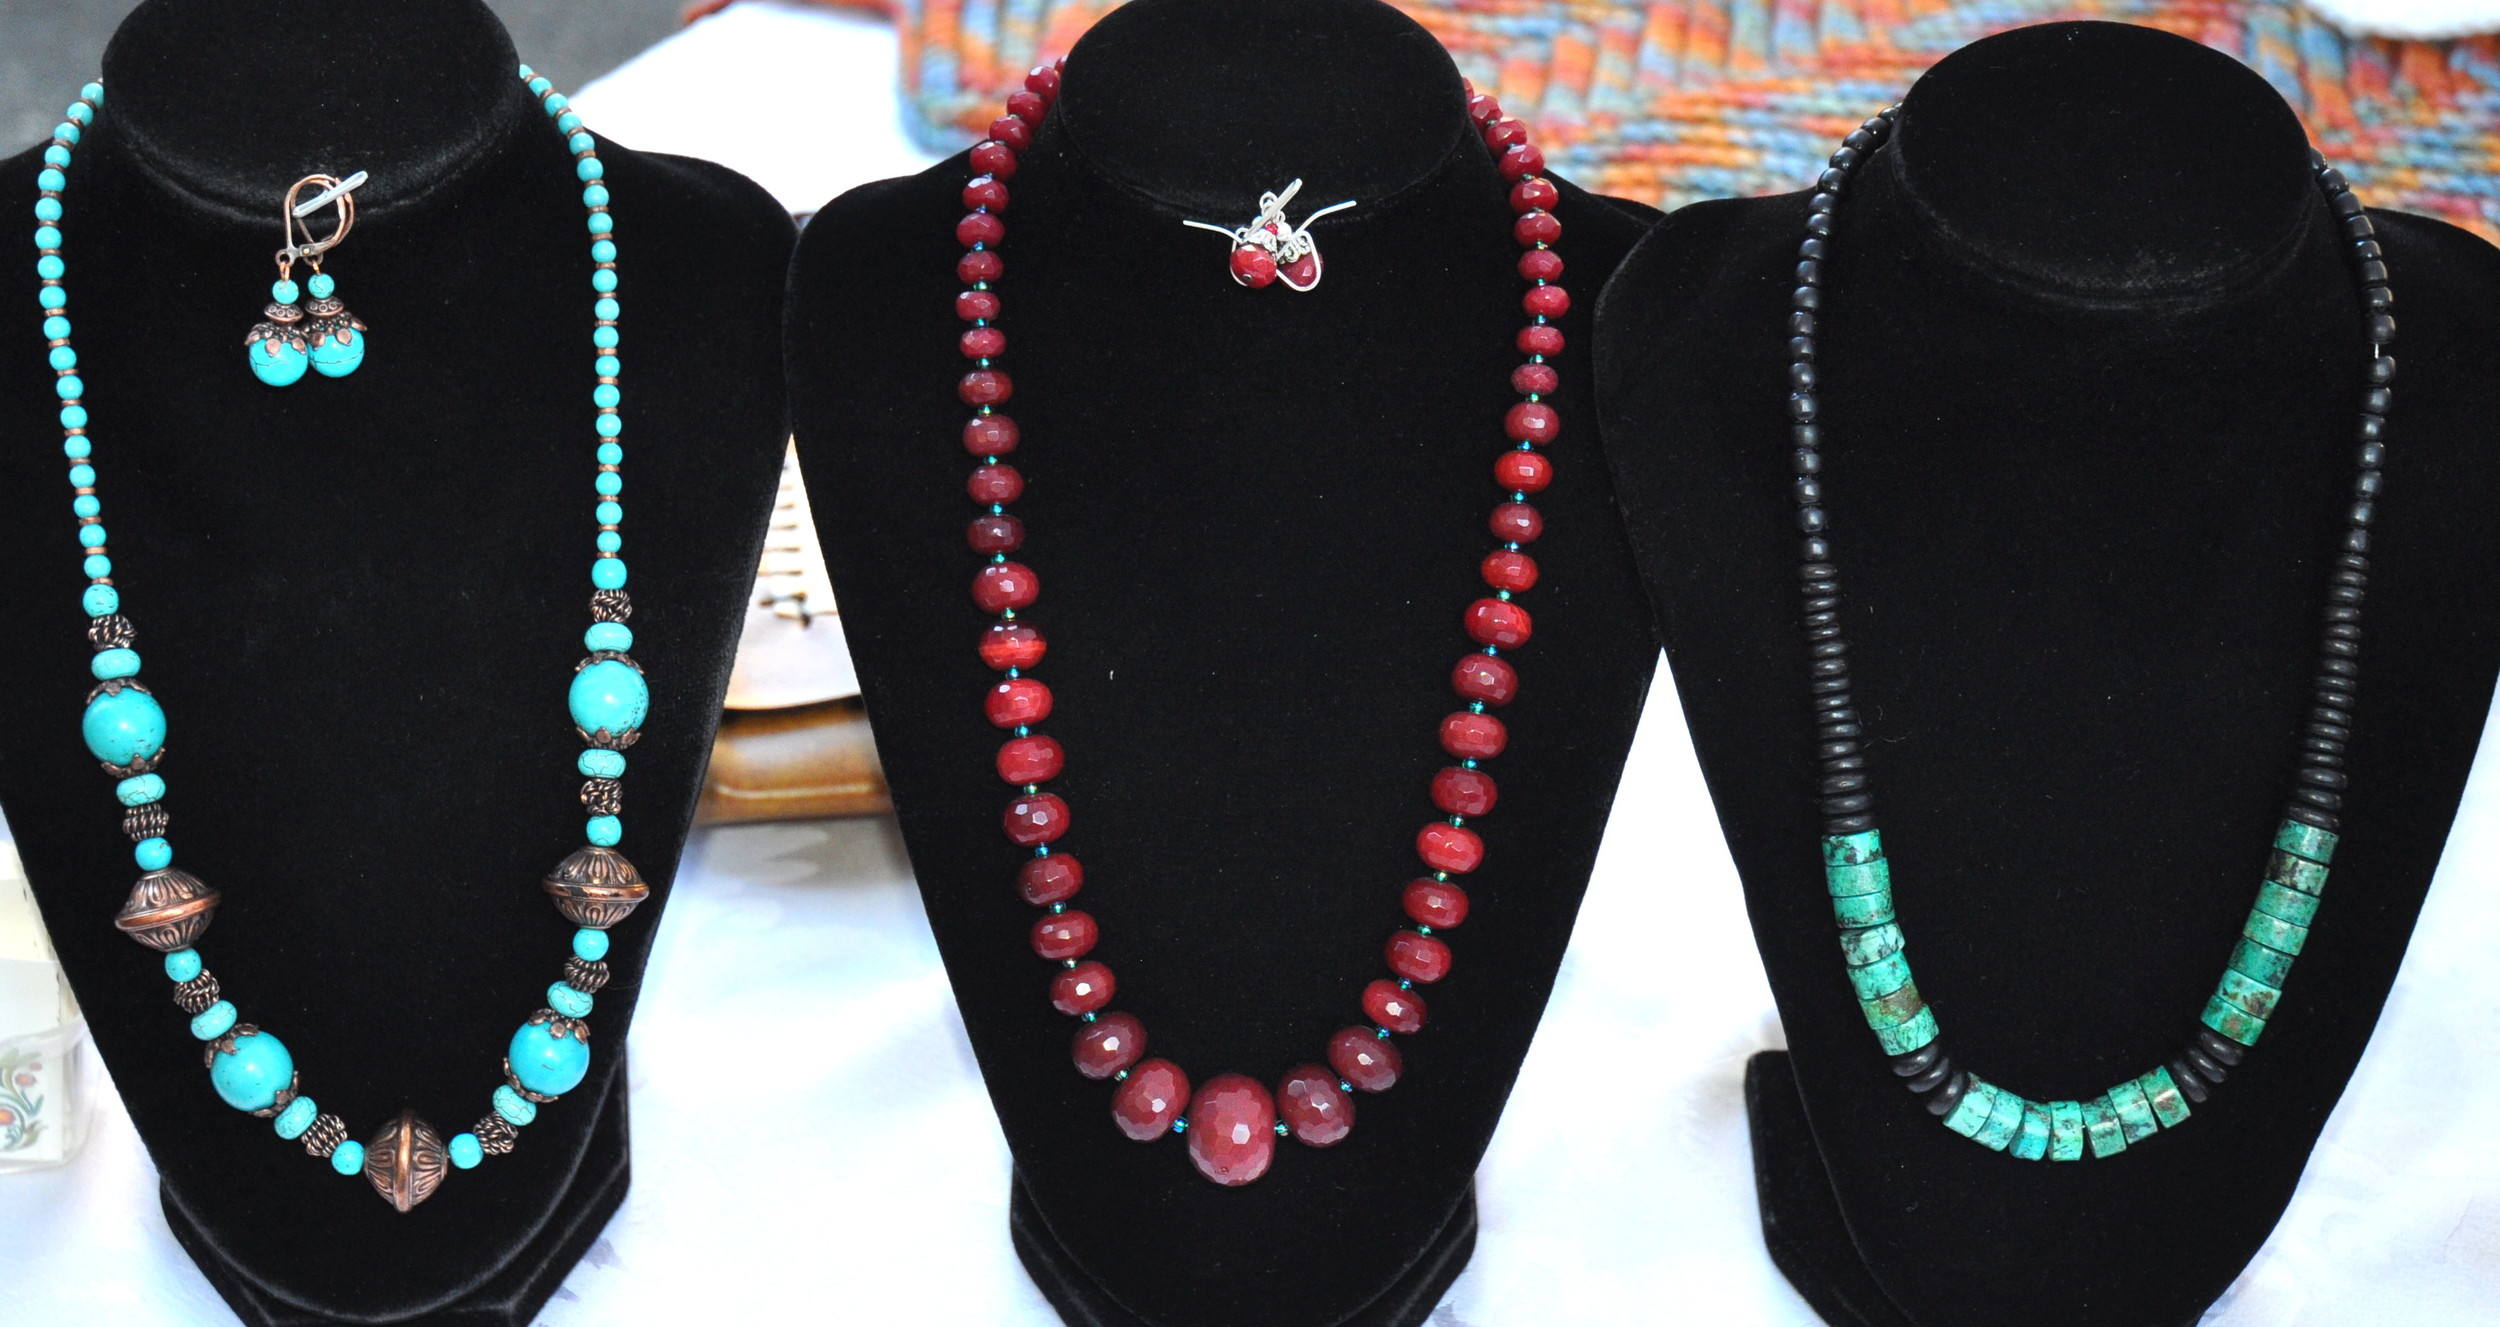 Beautiful, unique necklaces from Gypsy Beaded Creations at Ballard Farmers Market. Copyright Zachary D. Lyons.